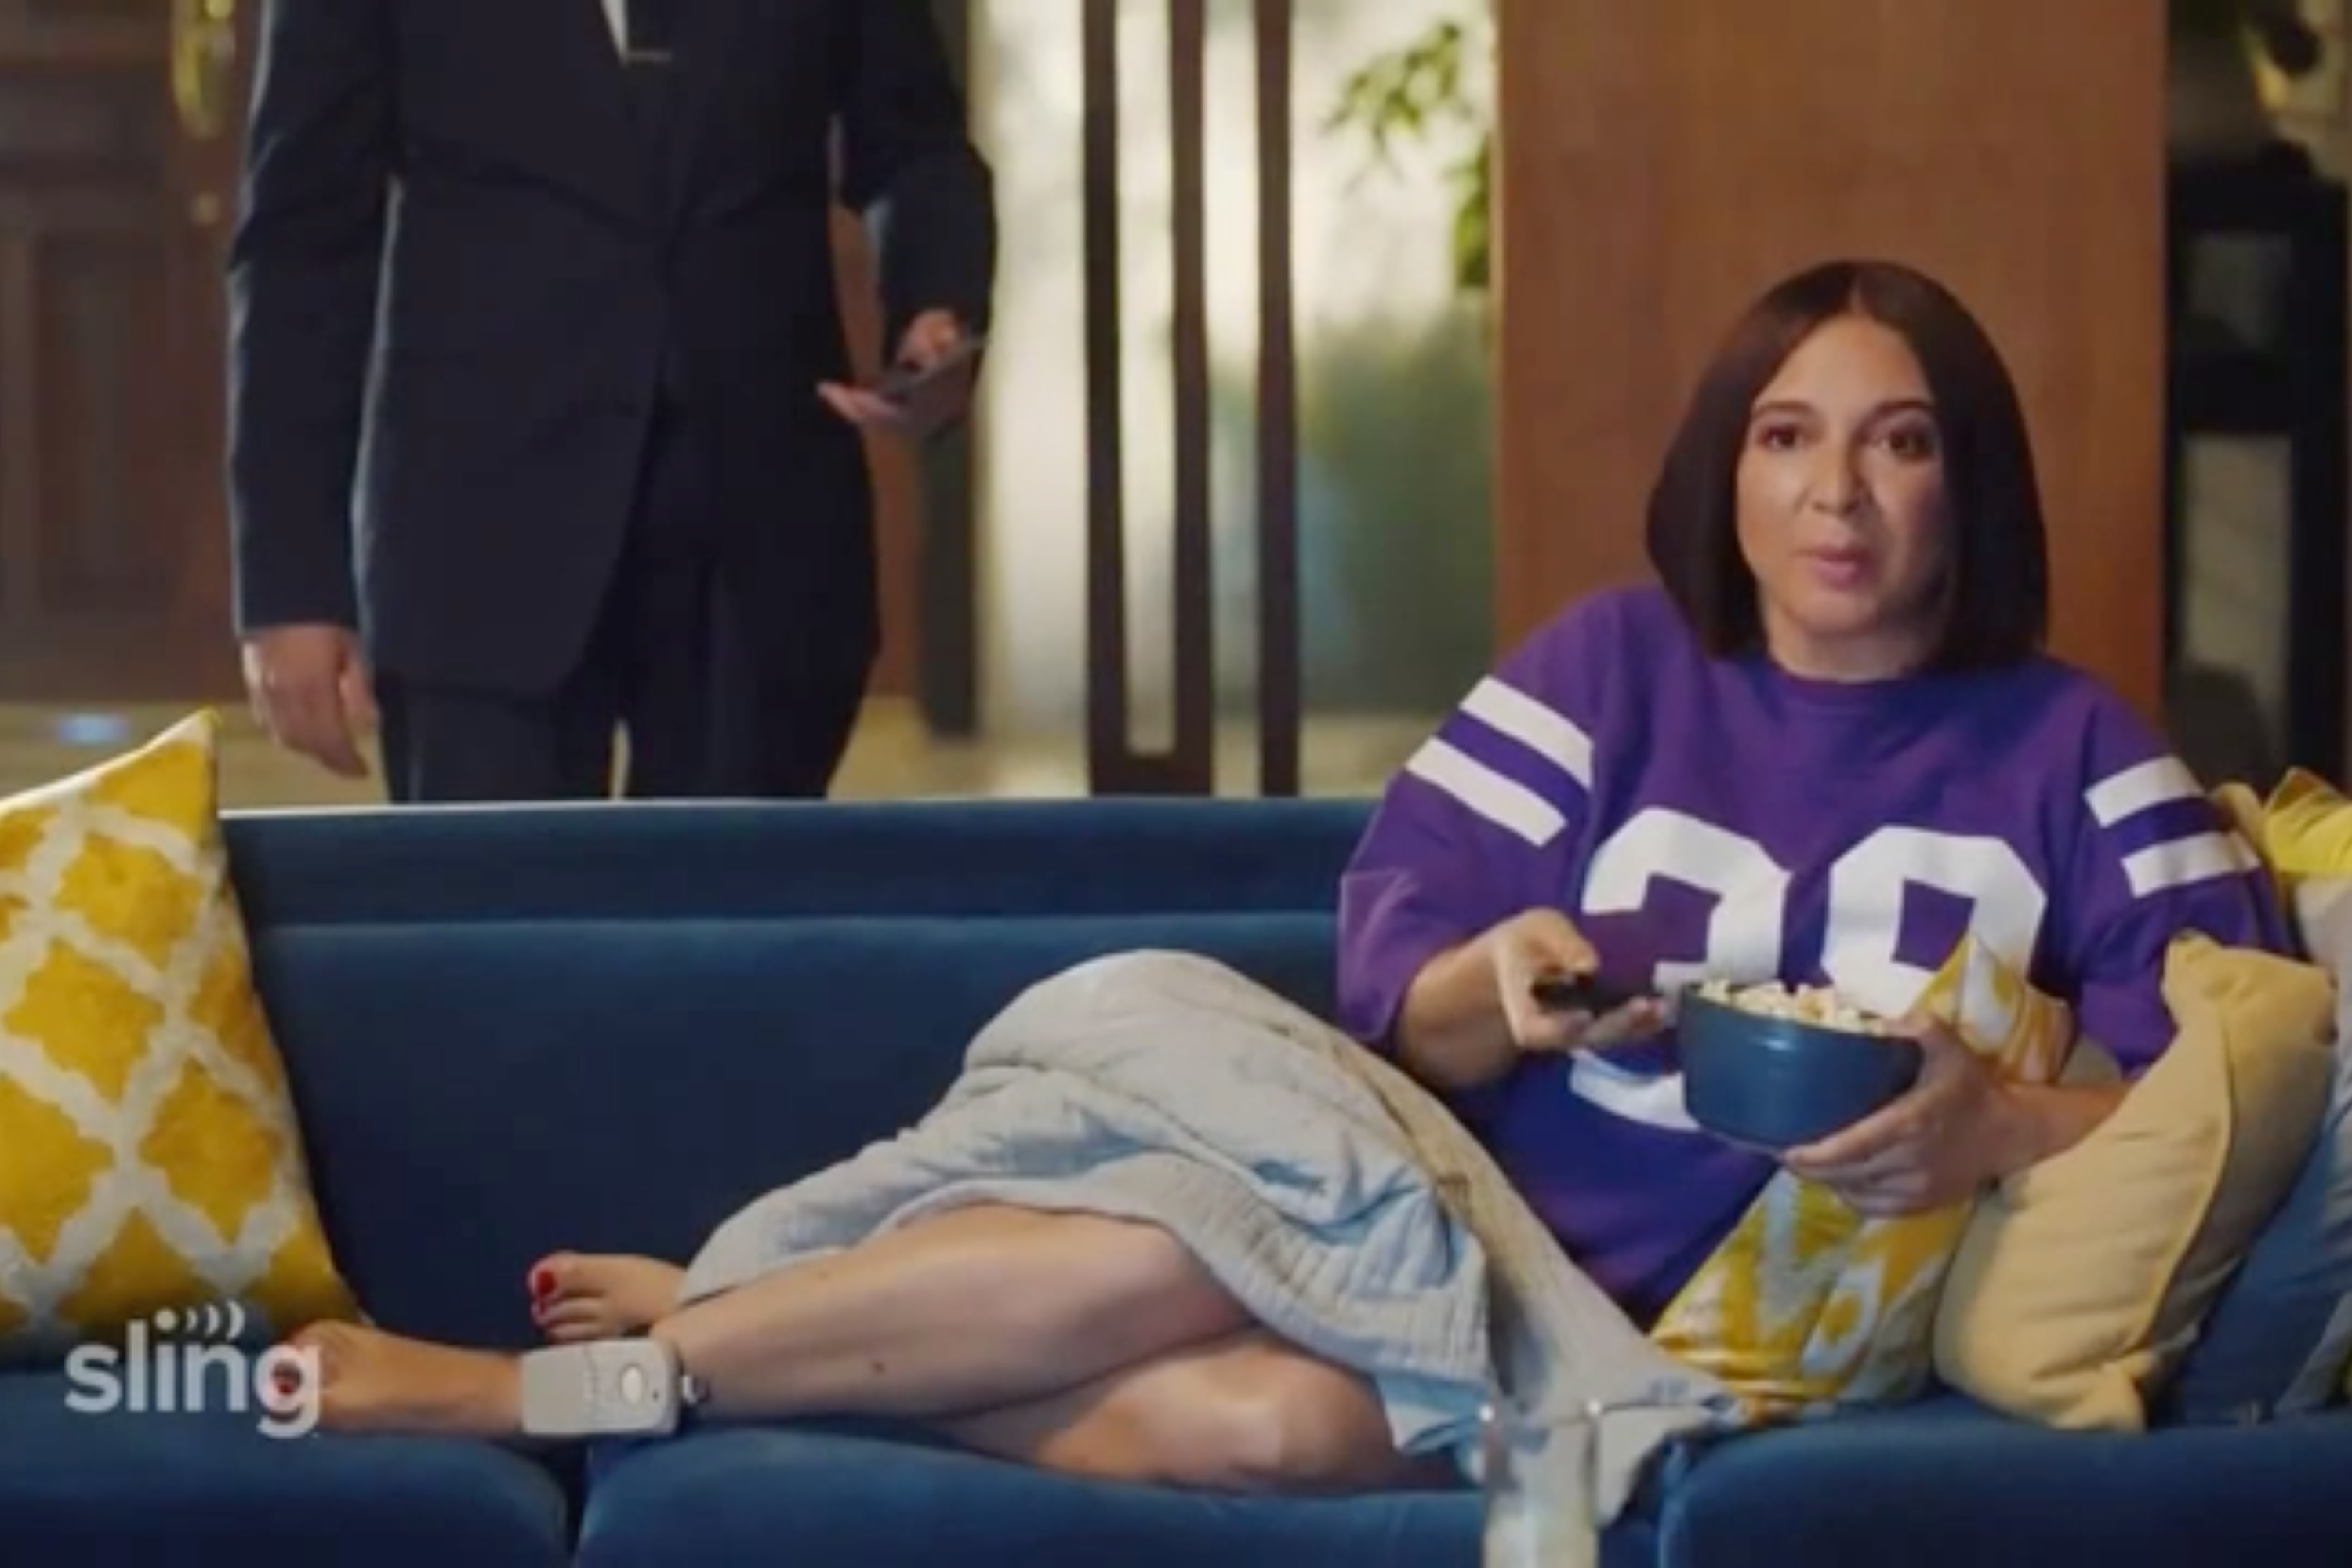 Watch the newest commercials on TV from Google, Sling, Facebook and more